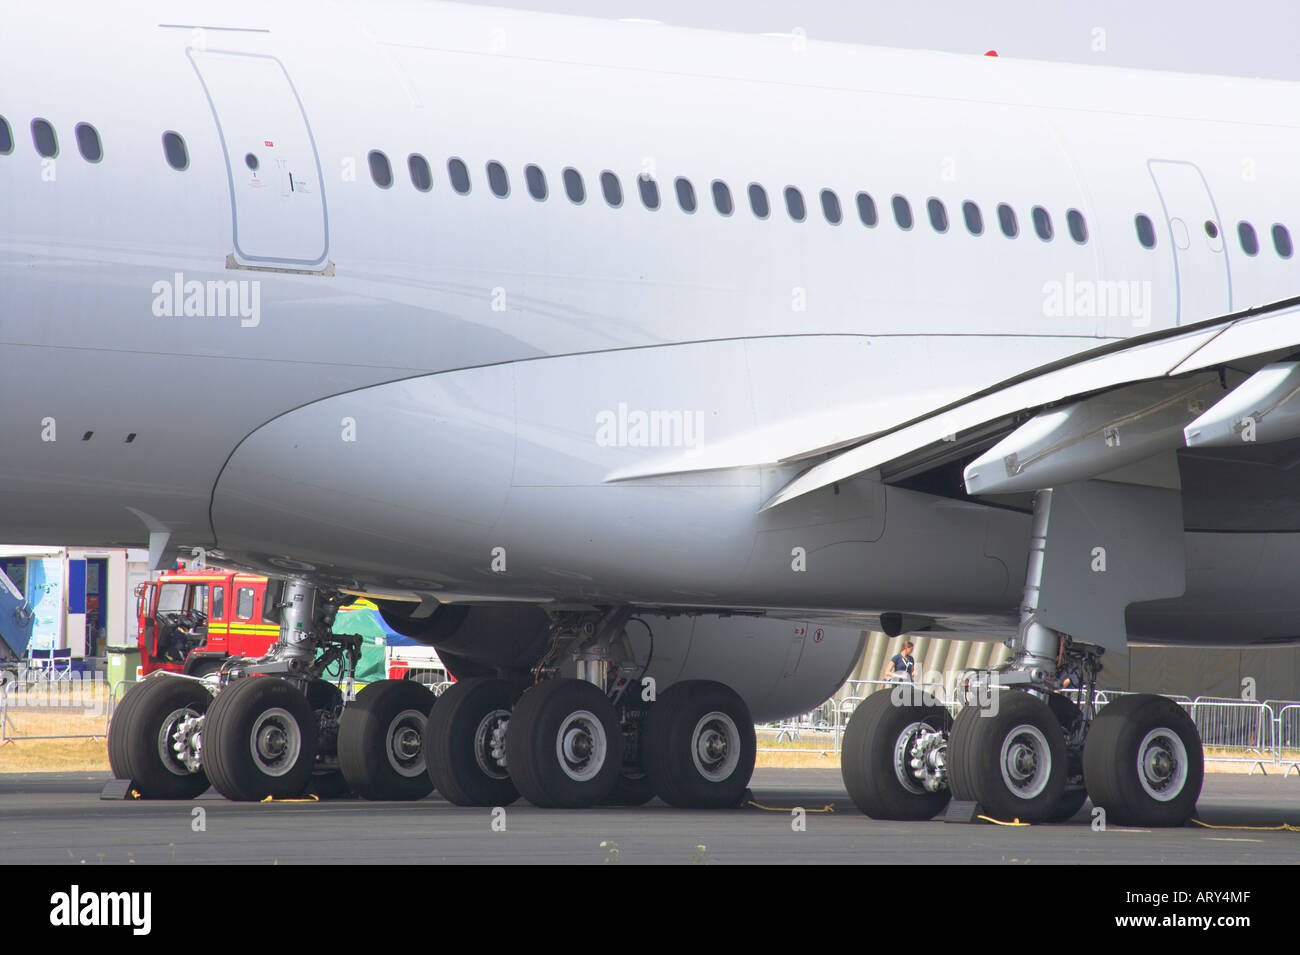 Undercarriage of the Airbus 340 600 - Stock Image